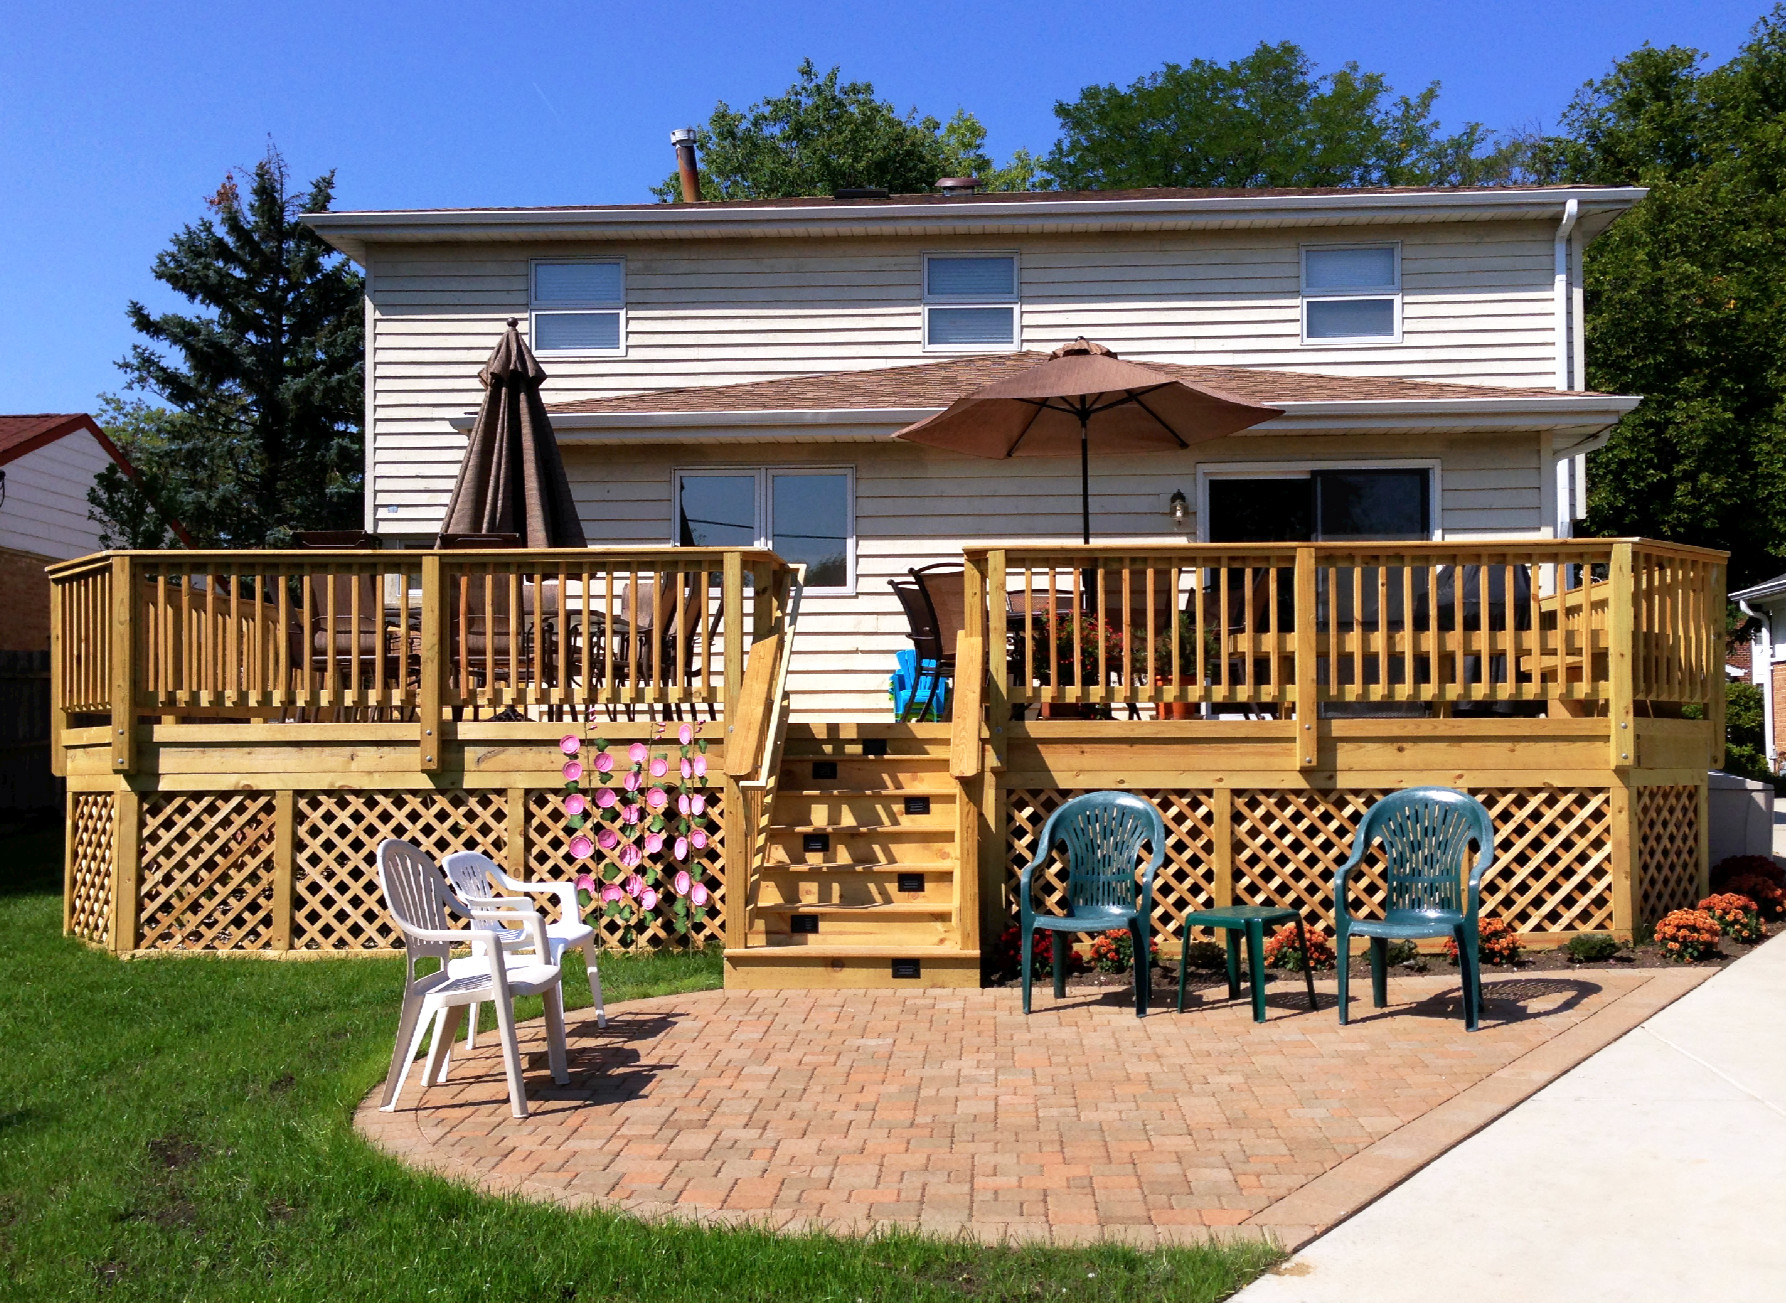 Deck Cost Deck Cost What Does A New Deck Cost To Build Nj Top Deck